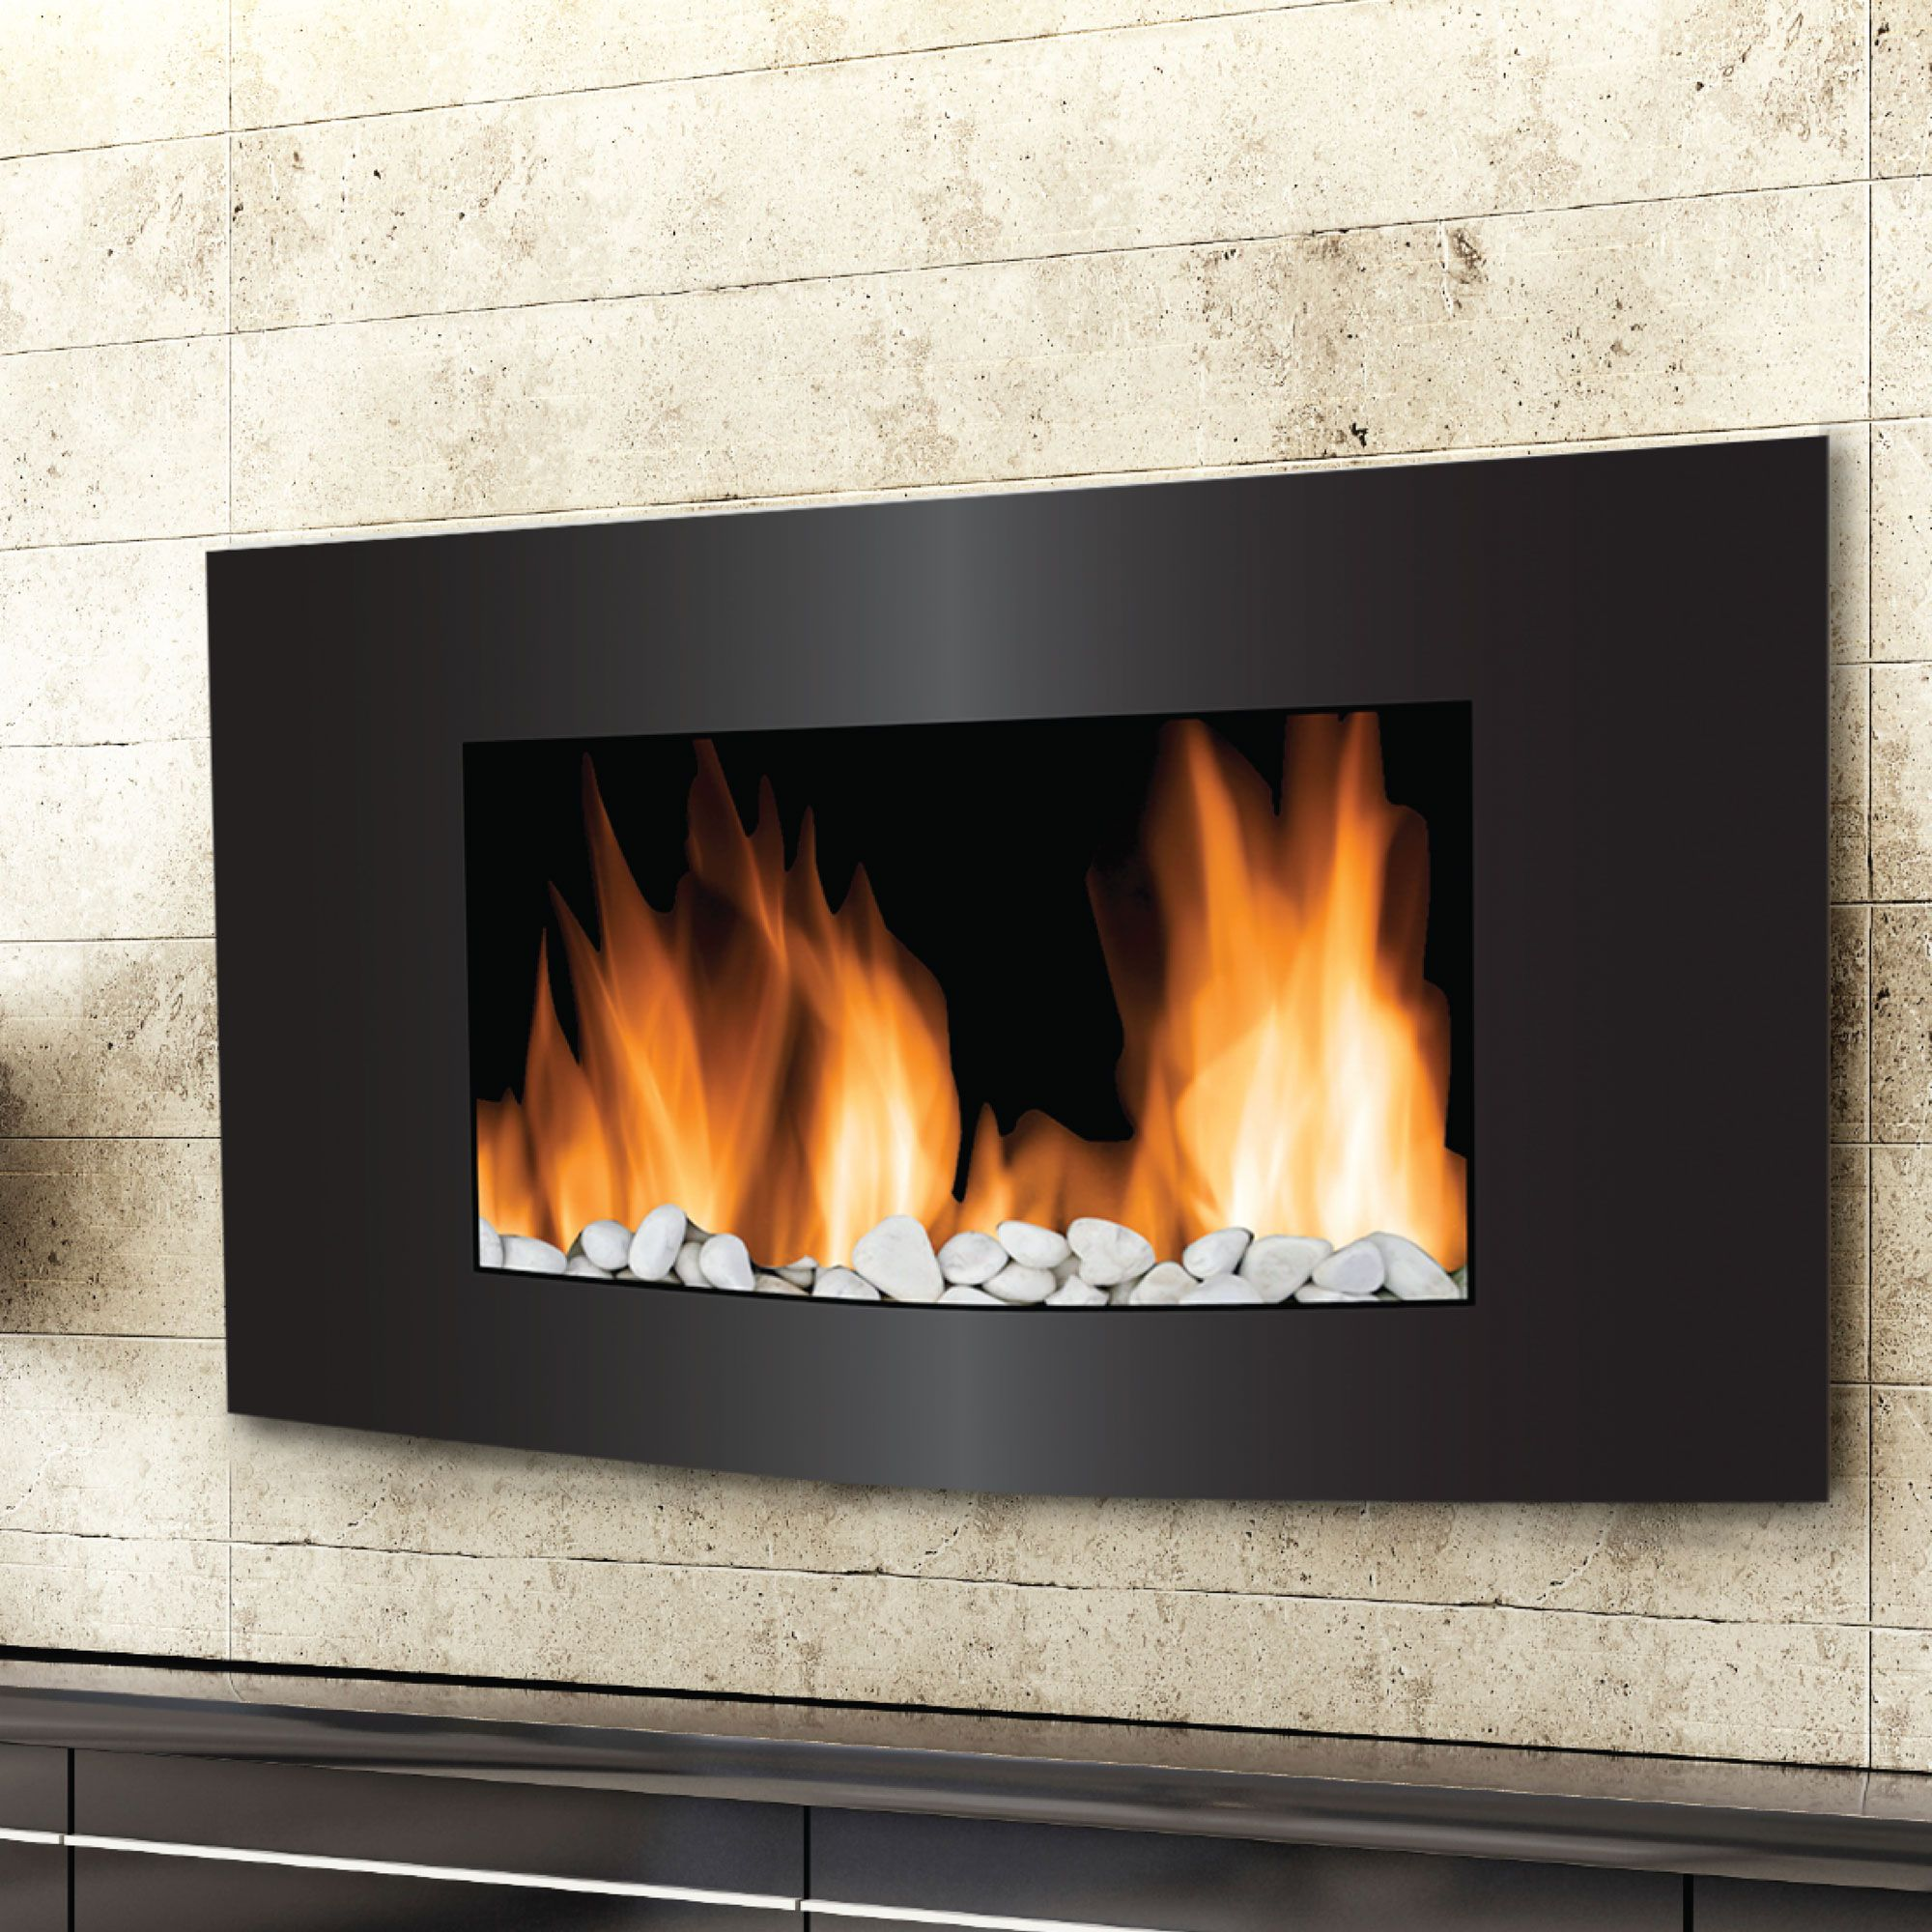 Frigidaire Vienna 2 in 1 Fireplace w/ Color Changing Flame